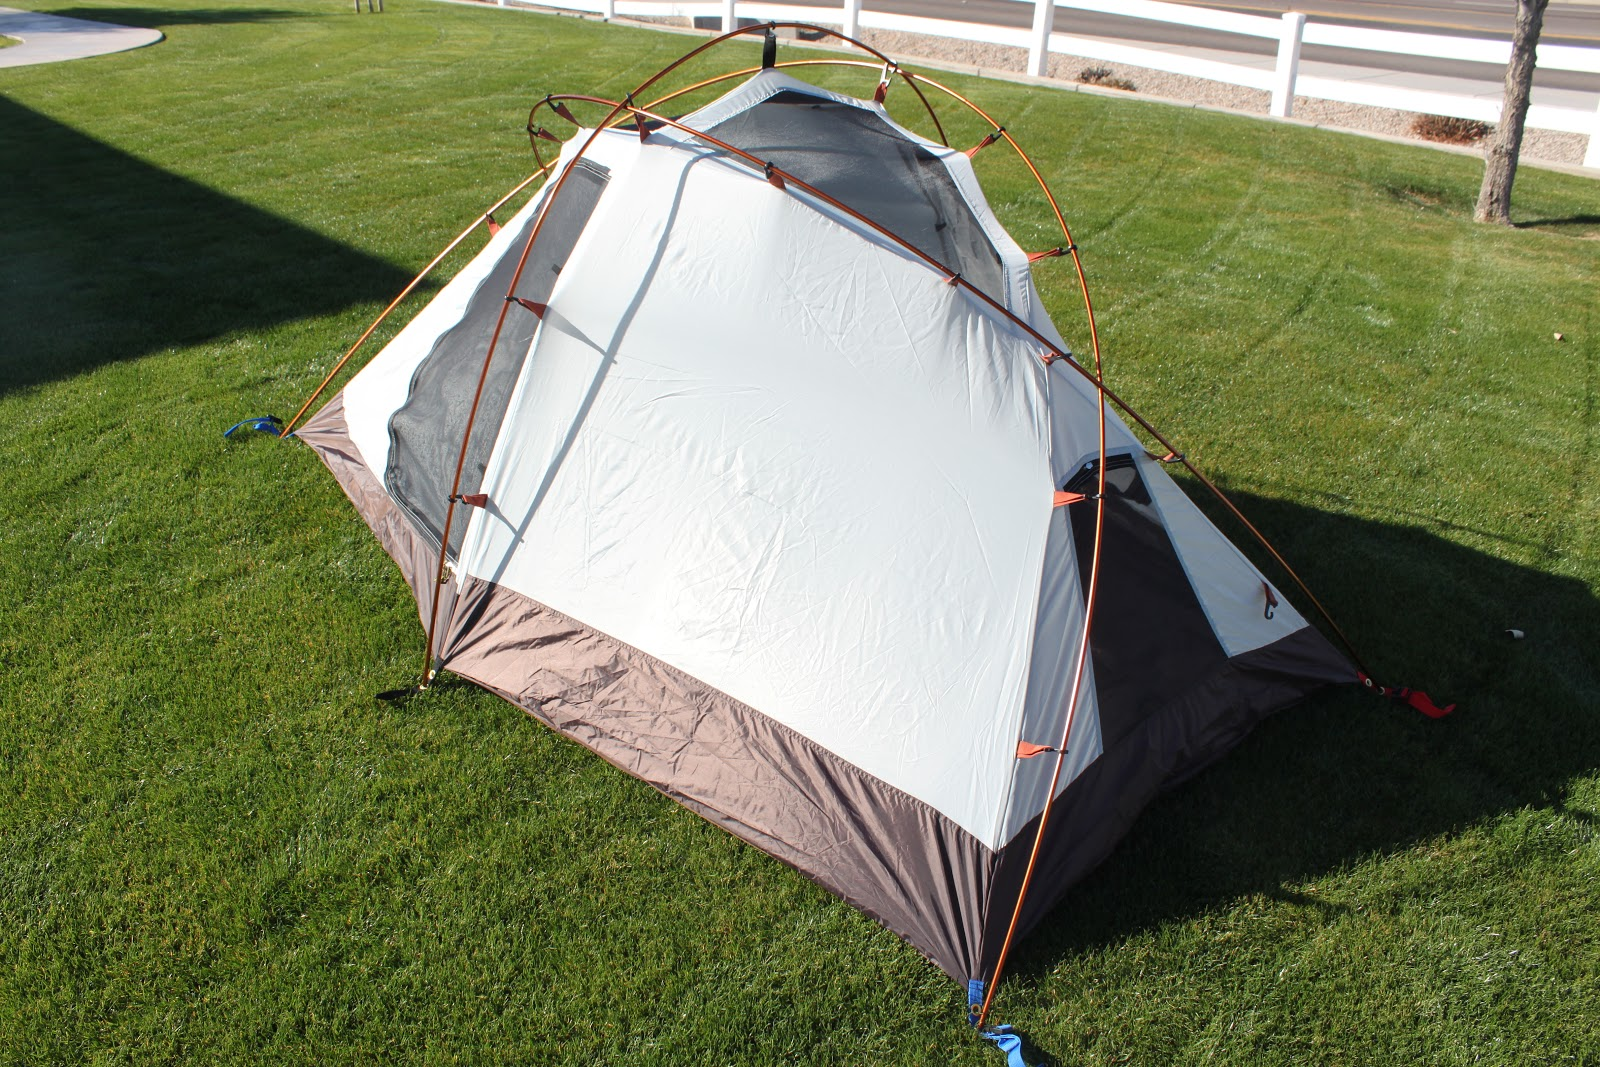 The tent came shipped in a standard brown box and was in their storage bag that also had images of the tent. My first impression was the weight. & Stereowise Plus: Alps Mountaineering Extreme 2 Backpacking Tent Review